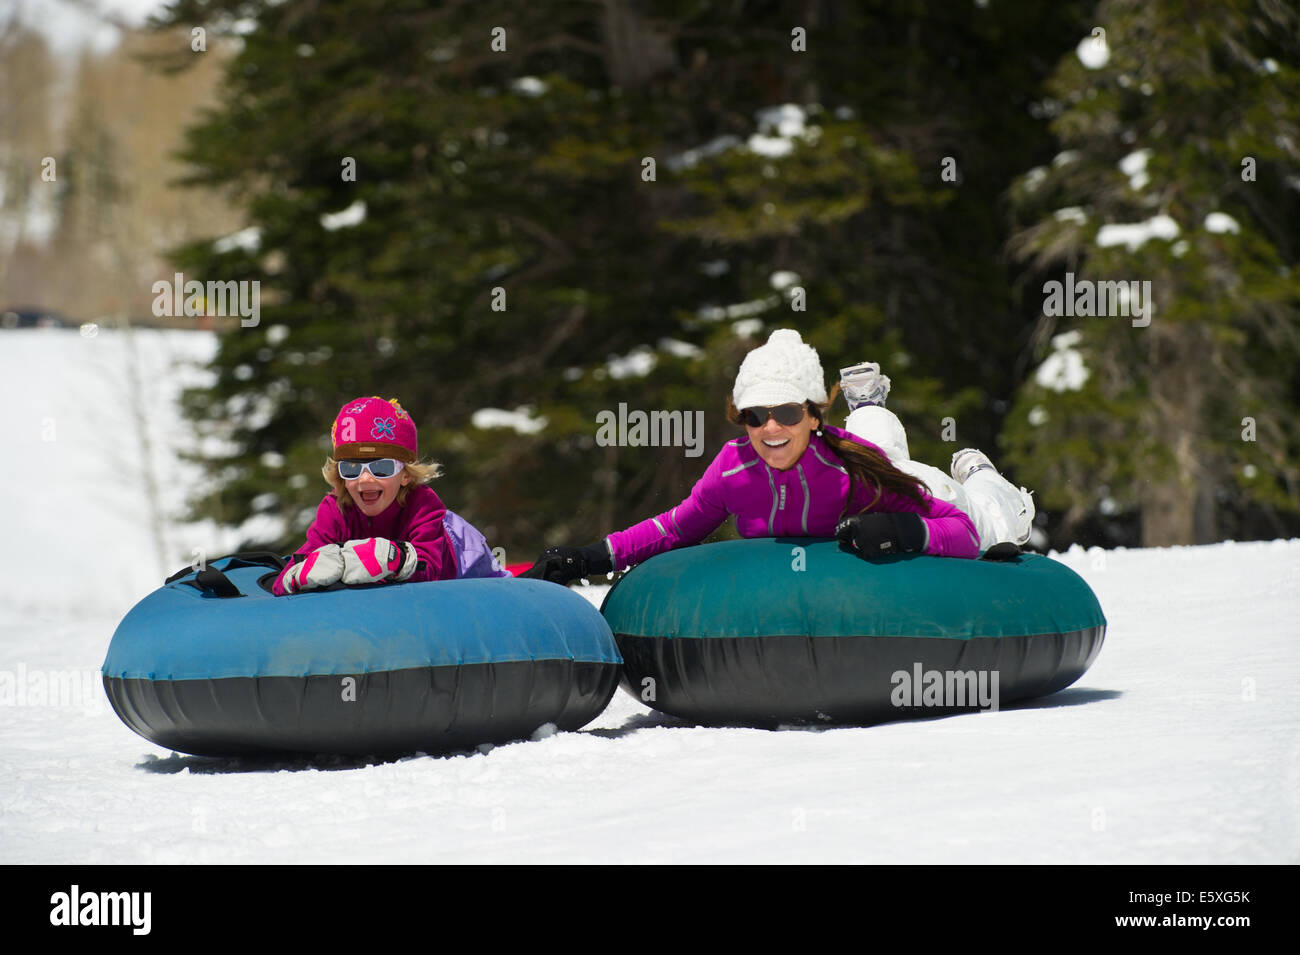 Suzanne and Lucy Weiss enjoy their time tubing at Snowbird Resort in Utah. - Stock Image